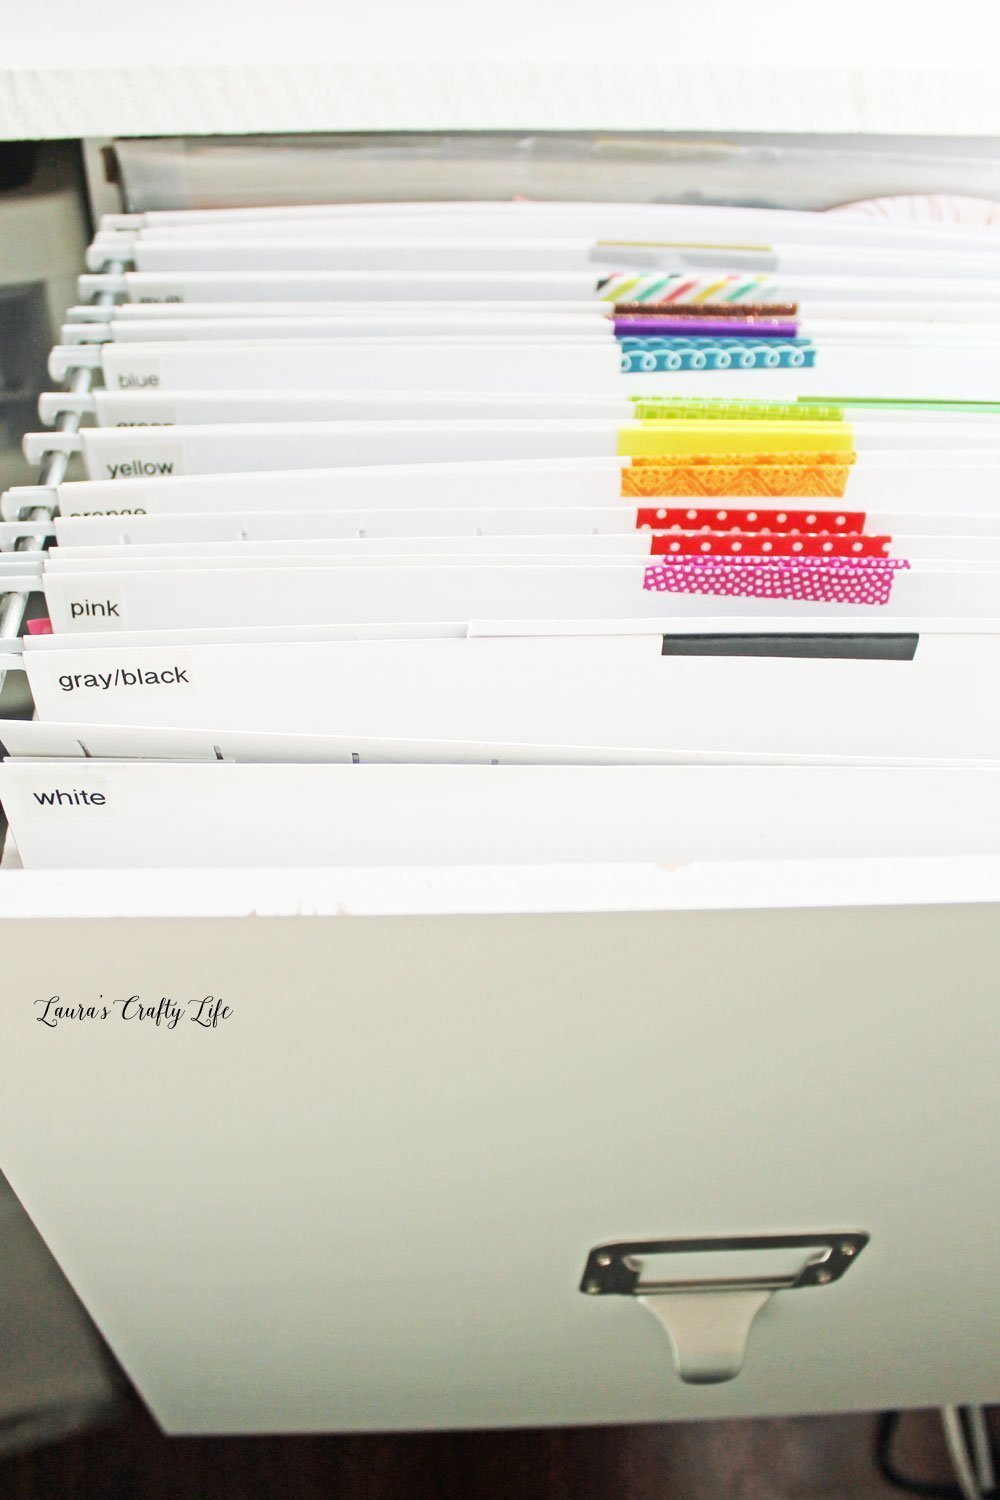 Paper scraps organization by color